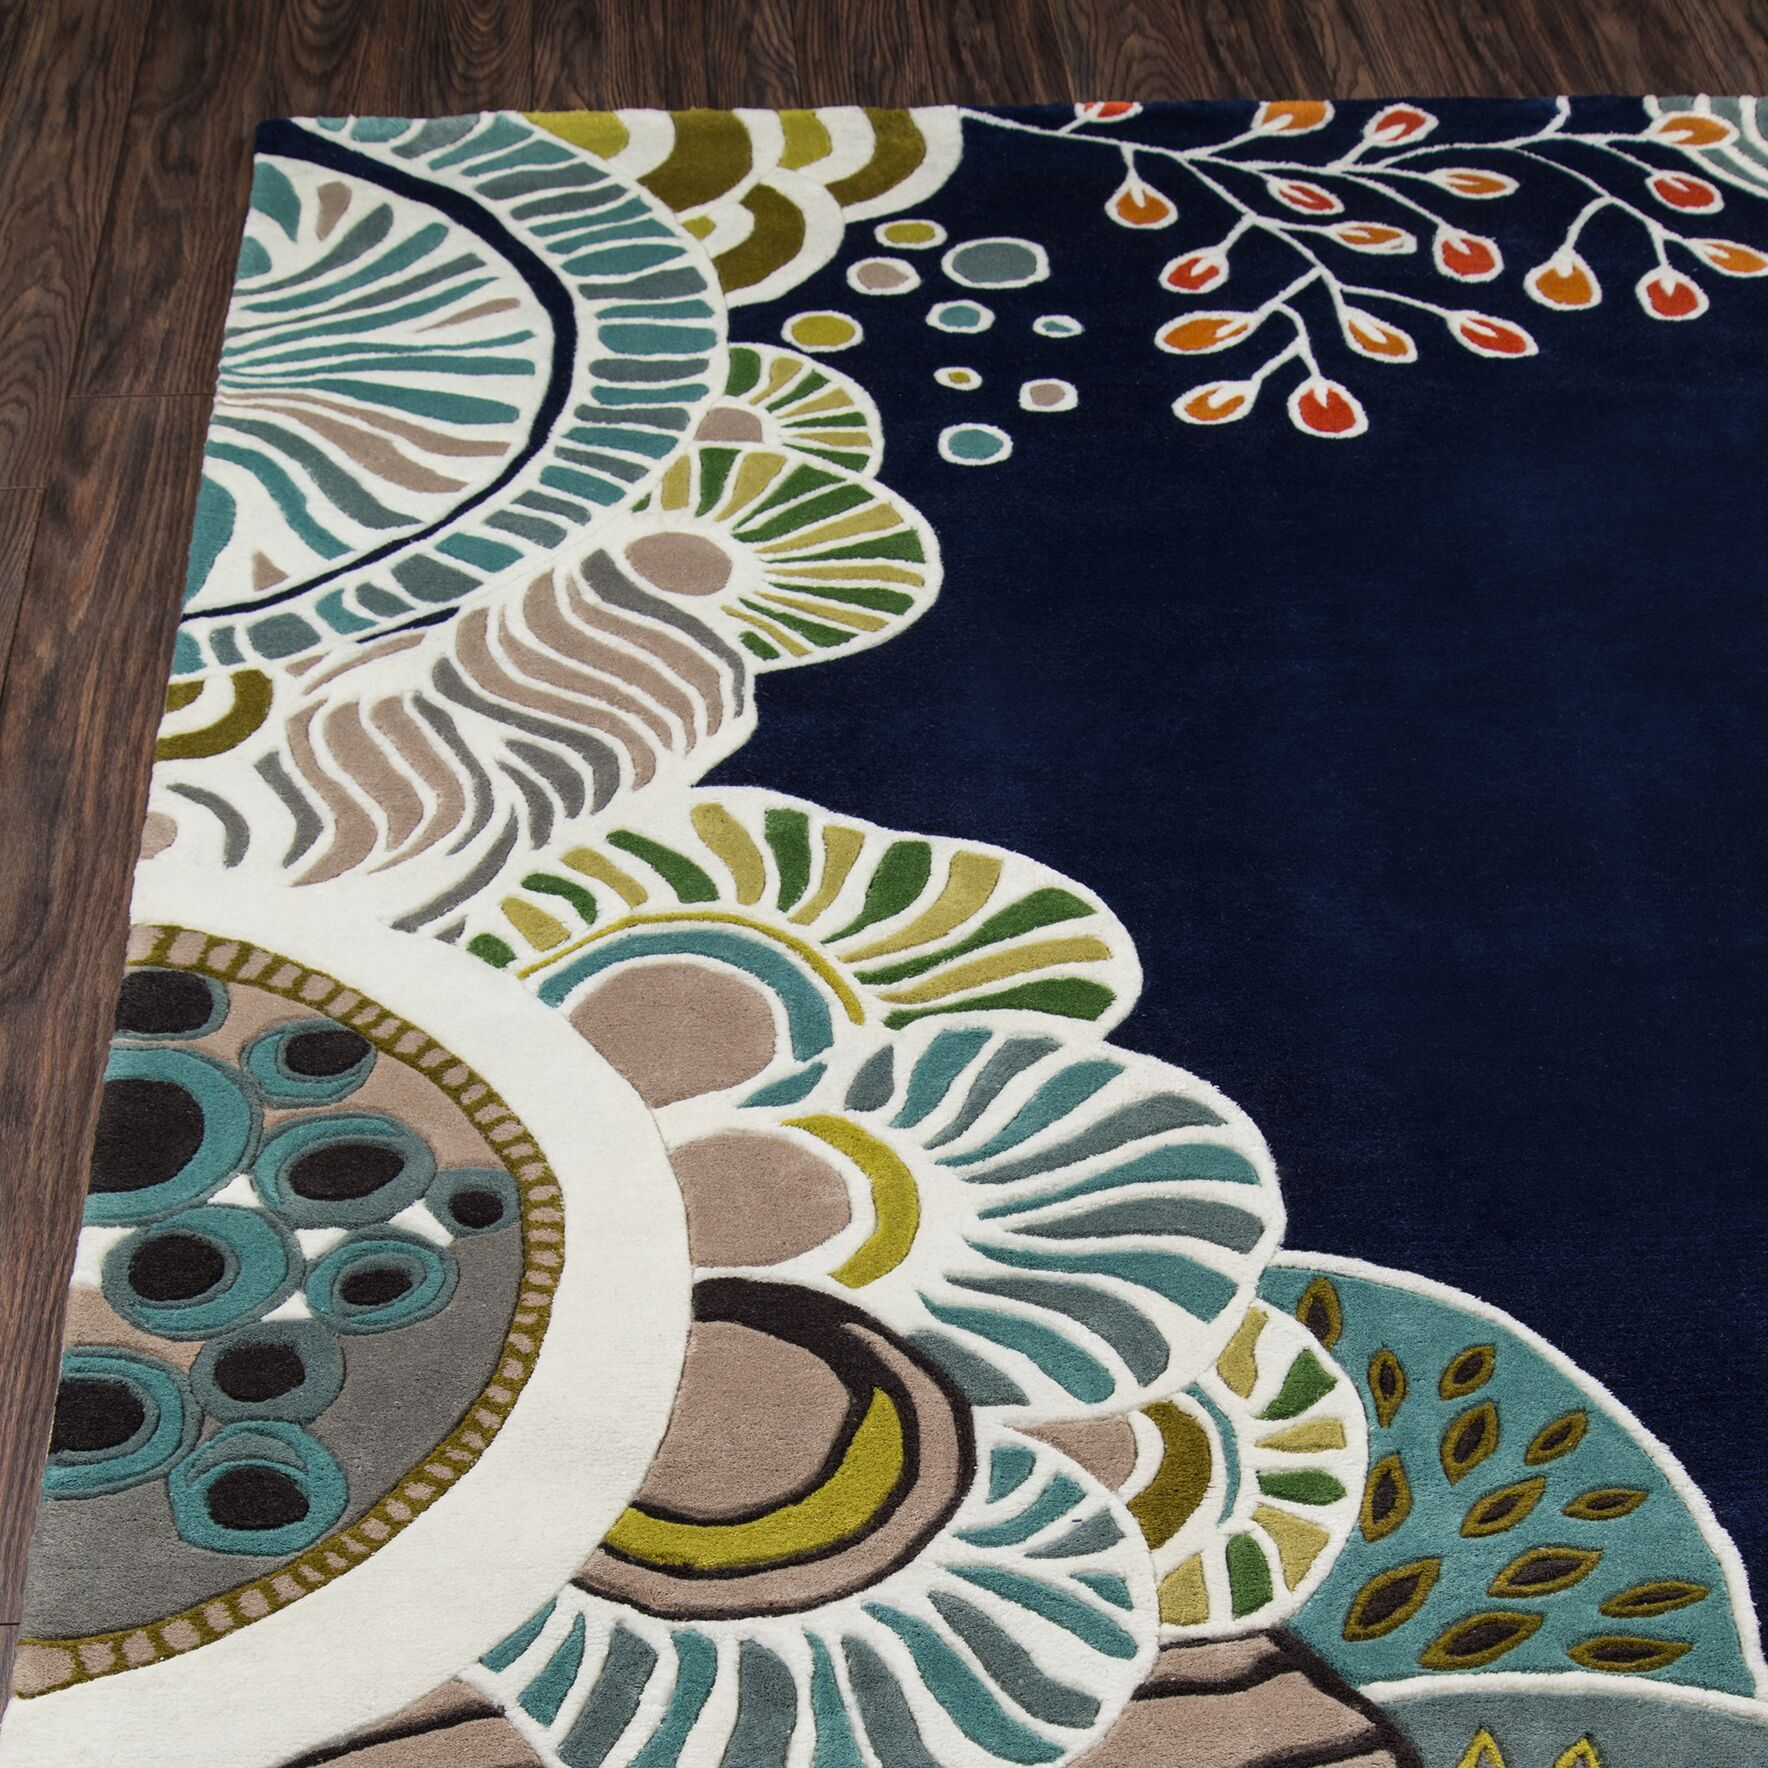 Despina Hand-Tufted Area Rug Rug Size: Round 5'9